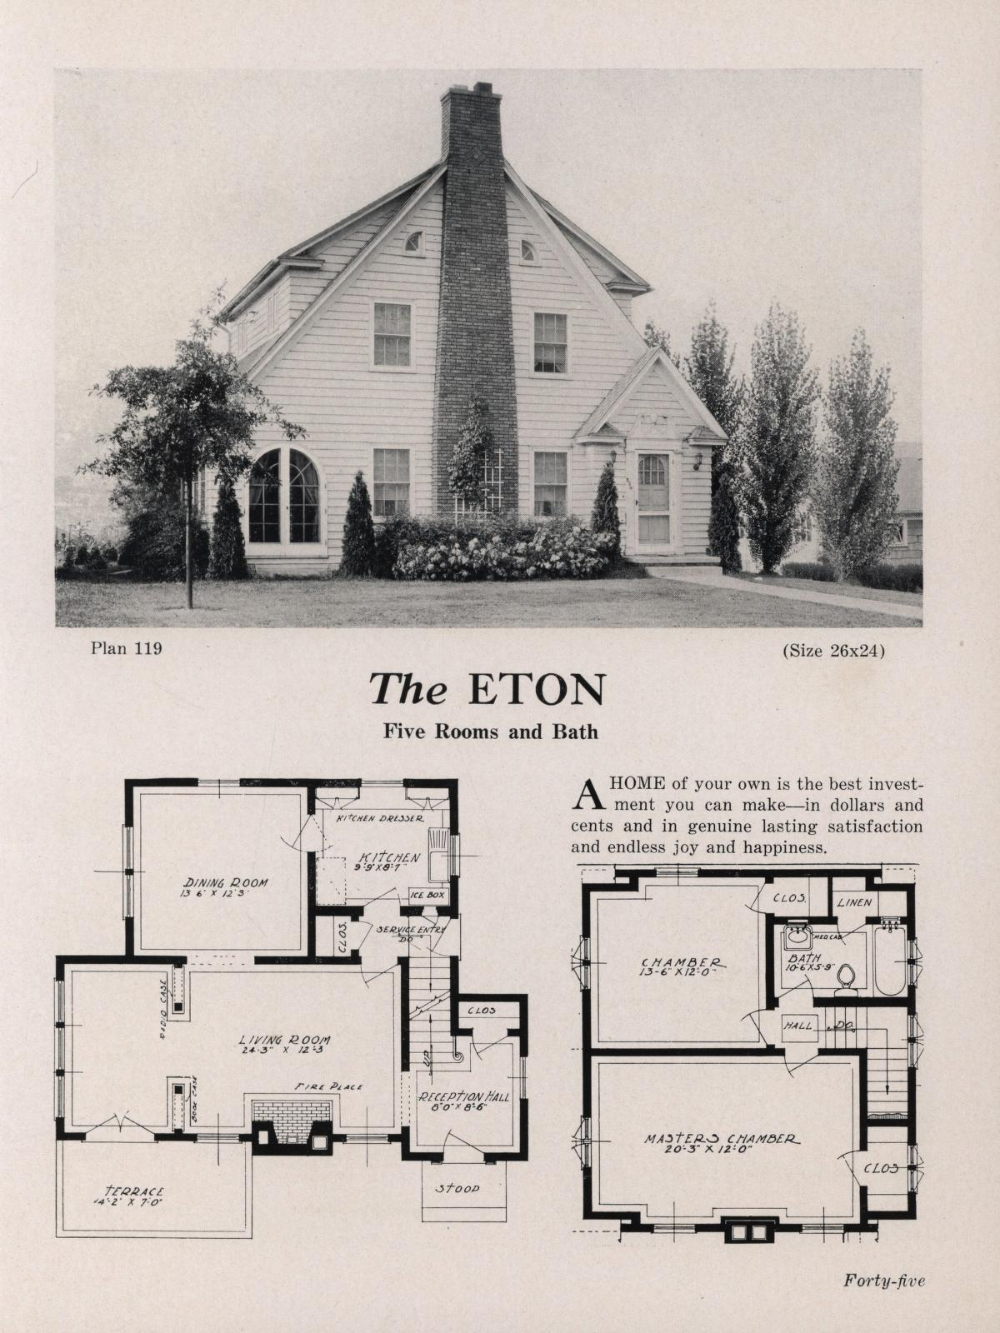 Modern American Homes Bawden Bros Inc Free Download Borrow And Streaming Internet Archive Vintage House Plans American Home Design House Plans